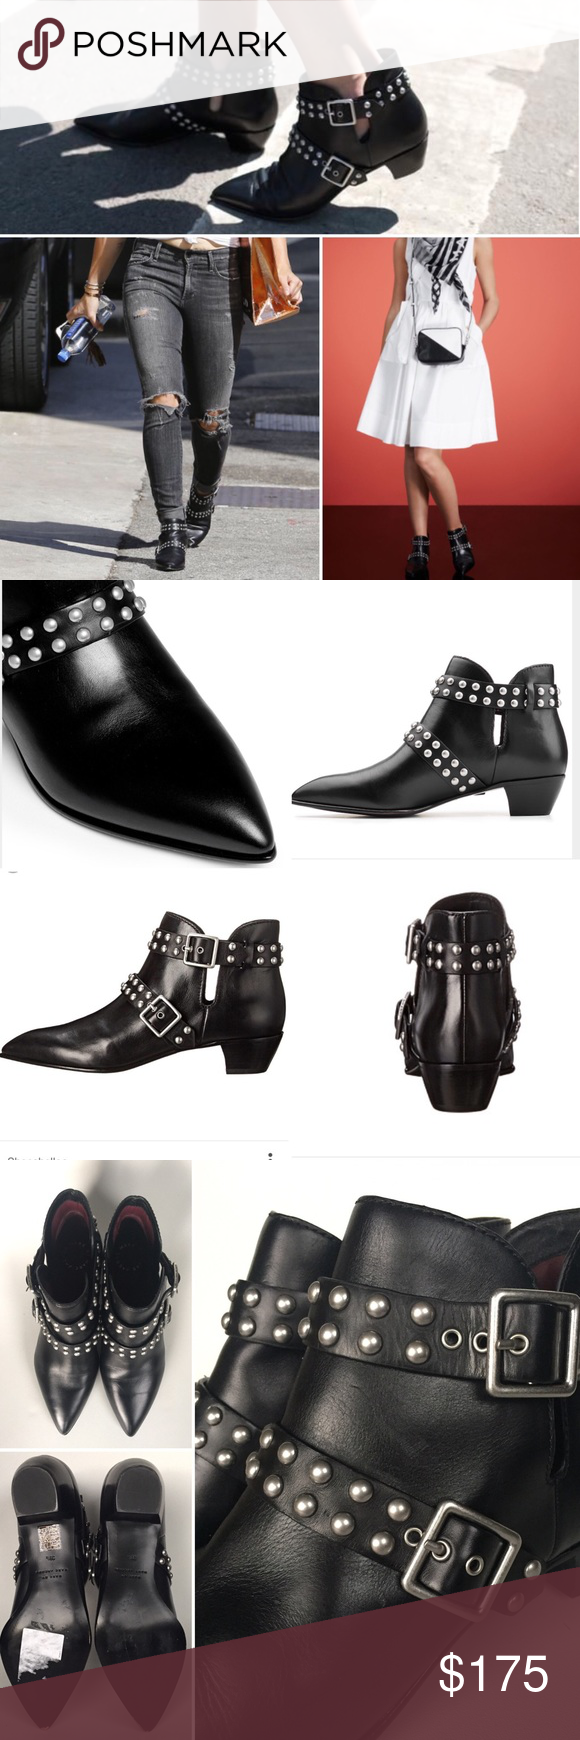 """Marc By Marc Jacobs Studded Black Leather Booties Supple Italian leather shapes these ankle boots that fuse smart retro-style design with a modern sensibility. Their sleek silhouette, pointy toe and studded straps will sharpen casual wear and add an unexpected bit of attitude to dressier looks. 1 1/2"""" heel with 4"""" boot shaft. Adjustable straps with buckle closures. These were floor model and have practically no signs of wear. Tiny imperfection in the leather in between the straps noted in…"""